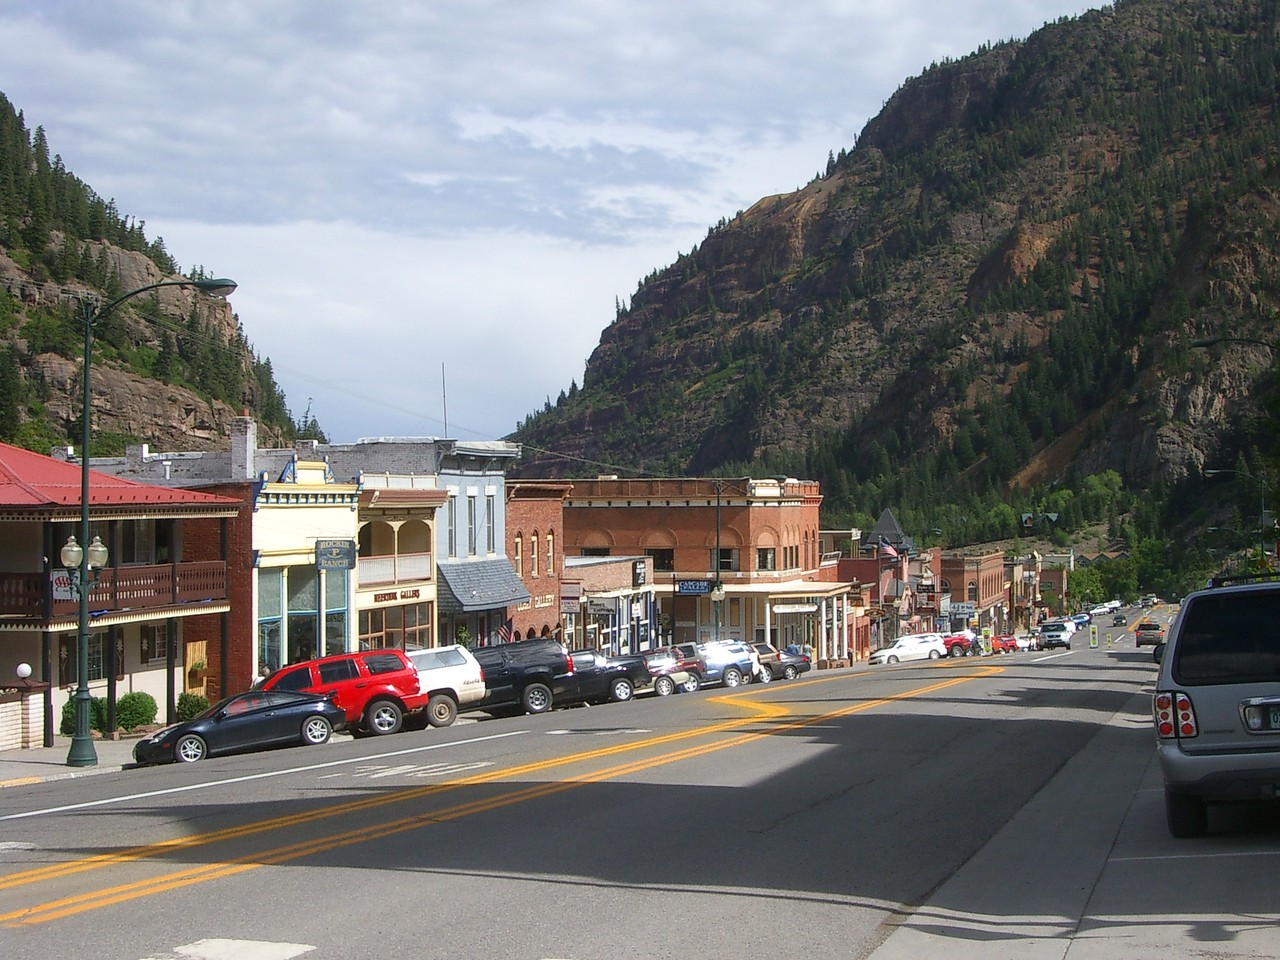 Ouray was another little town with tons of old buildings and character.